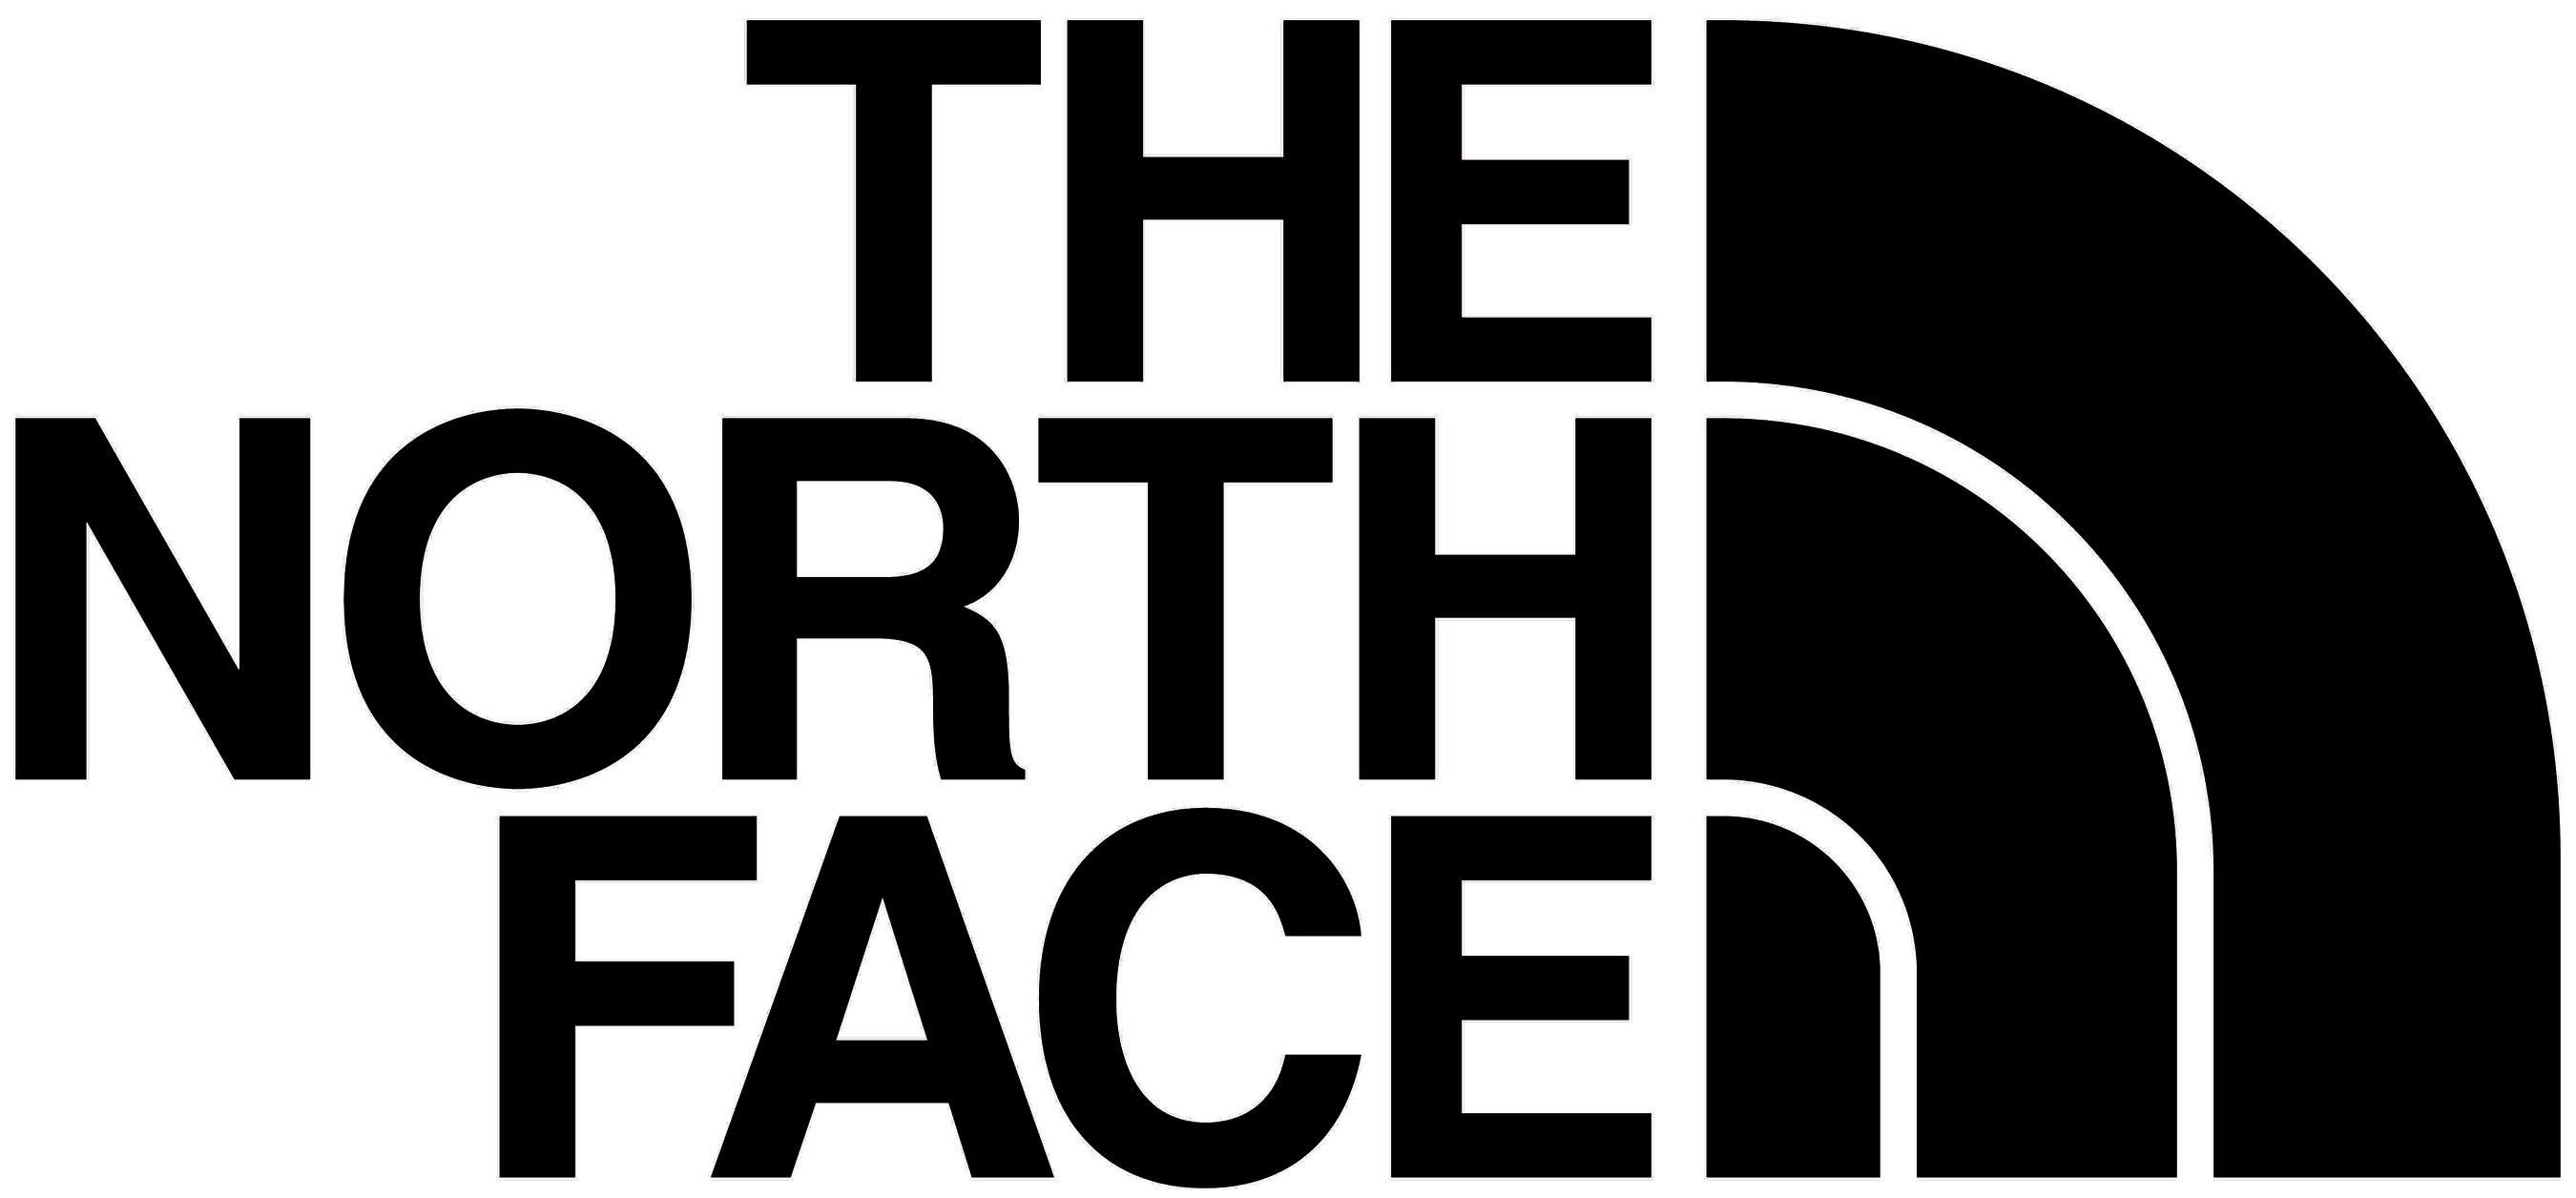 The North Face Brings Five Technologies To Market With The Introduction Of The Summit Series Advanced Mountain Kit